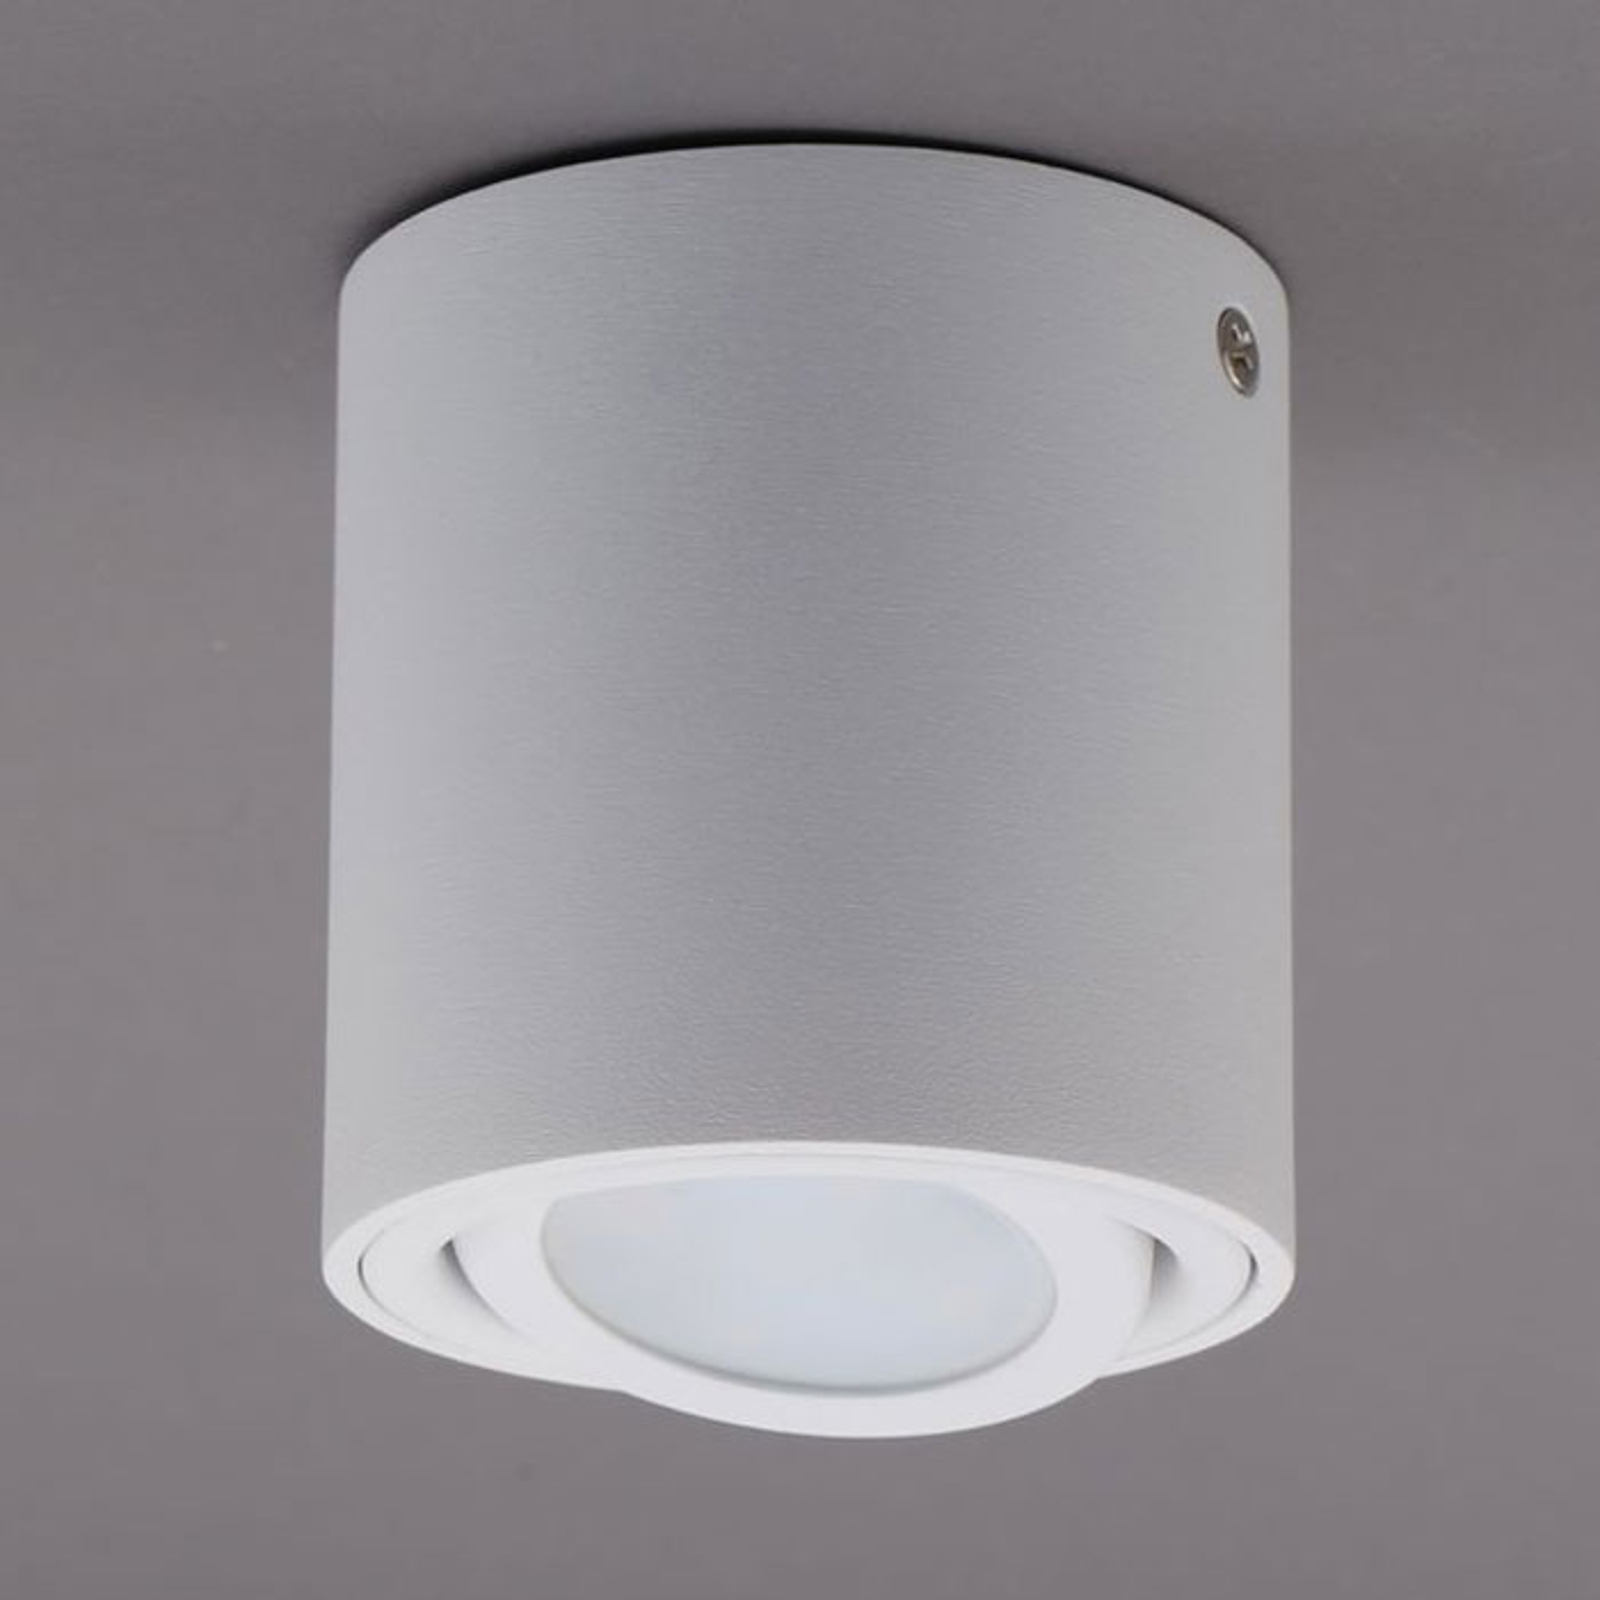 LED plafondlamp 7119 met GU10 LED, wit